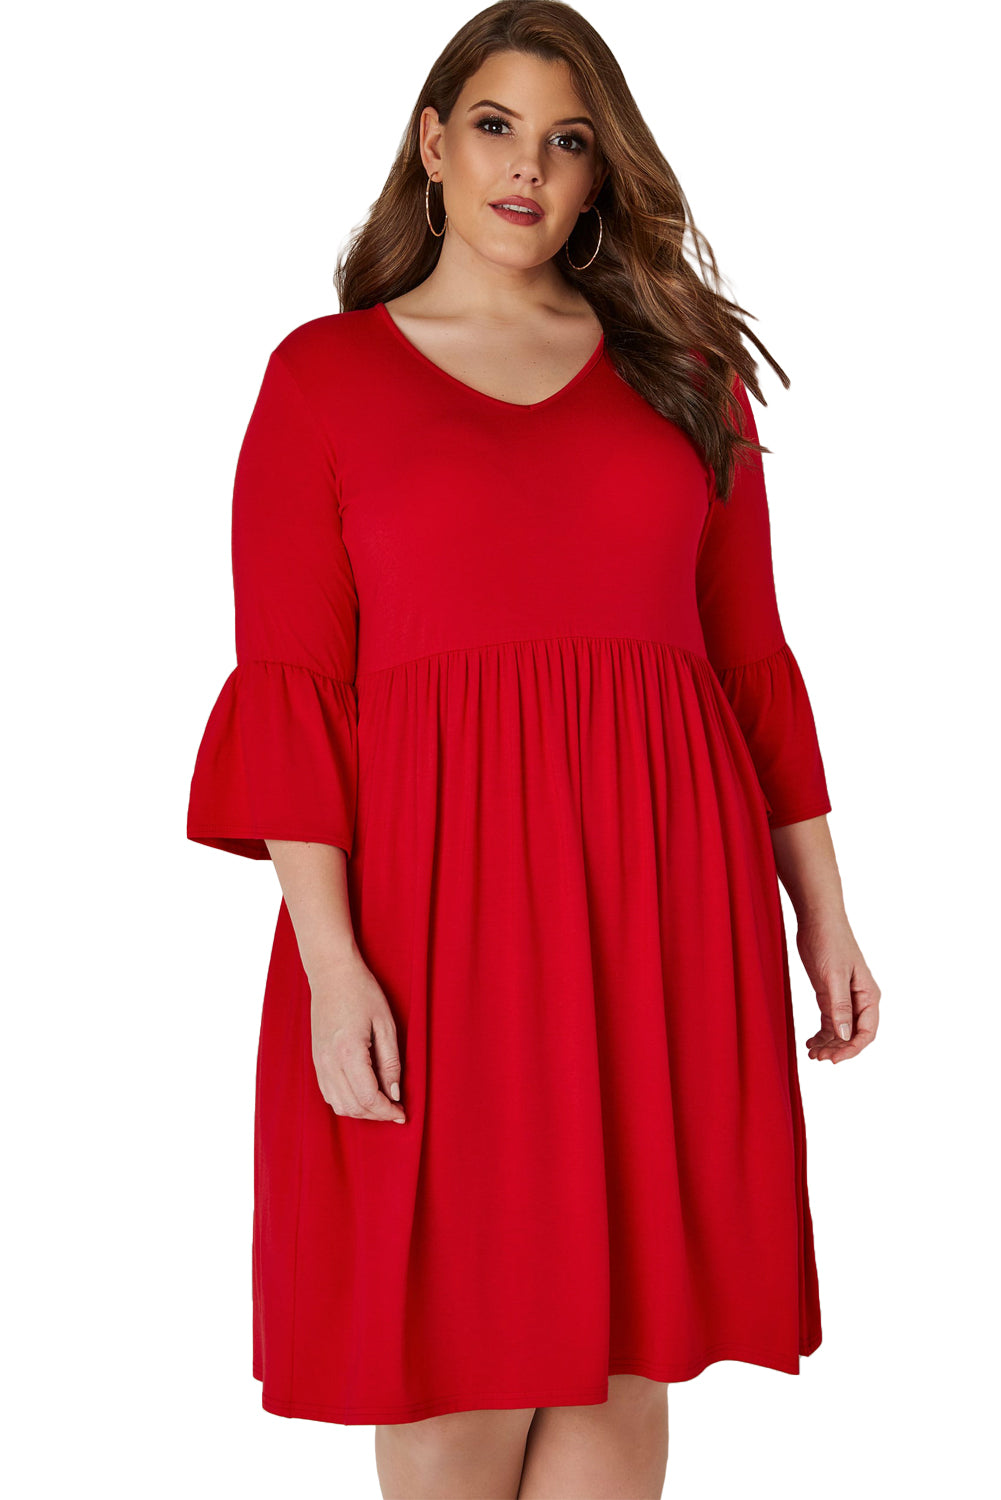 Red Flute Sleeves Plus Size Jersey Dress - Its Trendy Frenzy